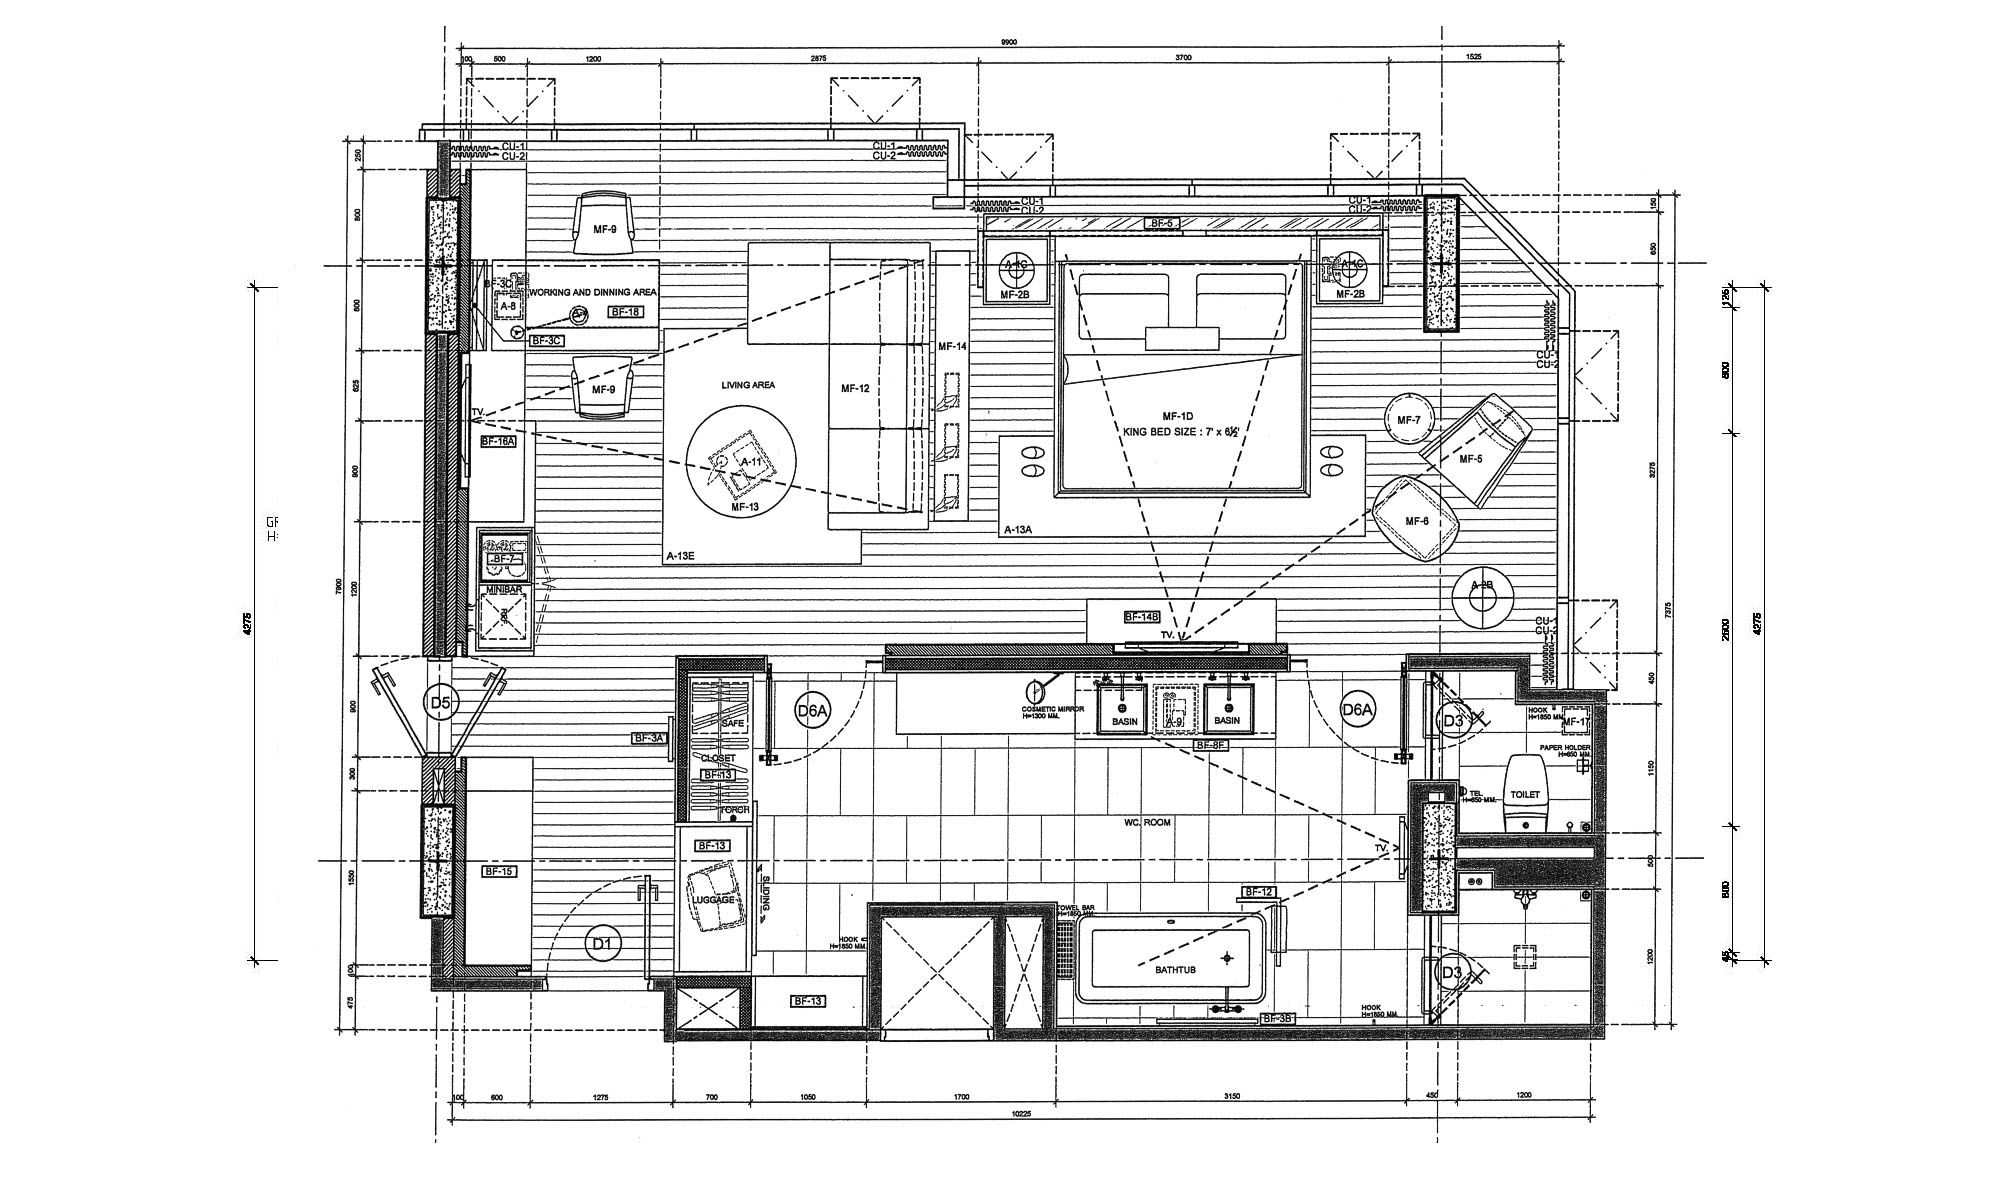 Design And Construction Hotel Floor Design Plan Hotel Suite Hotel Suite Floor Plan Hotel Floor Plan Hotel Suite Plan